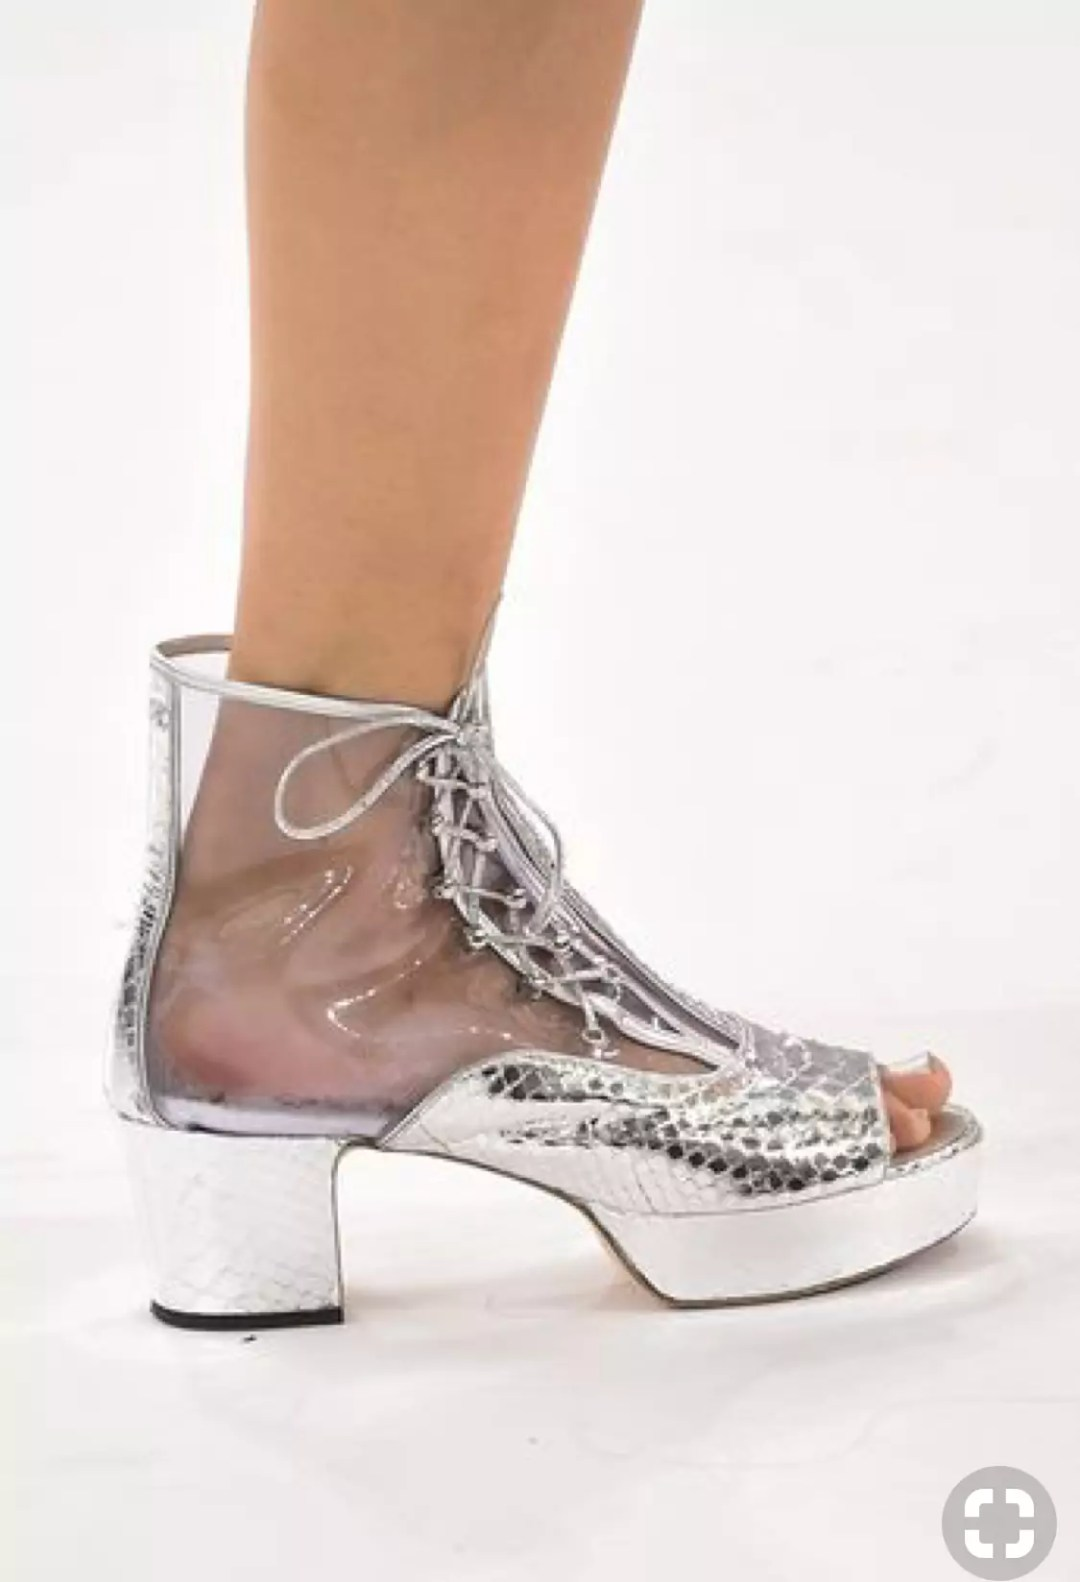 chanel 2016 spring clear shoes alley girl trend review - Who did Design the Very First Clear Transparent Shoes?